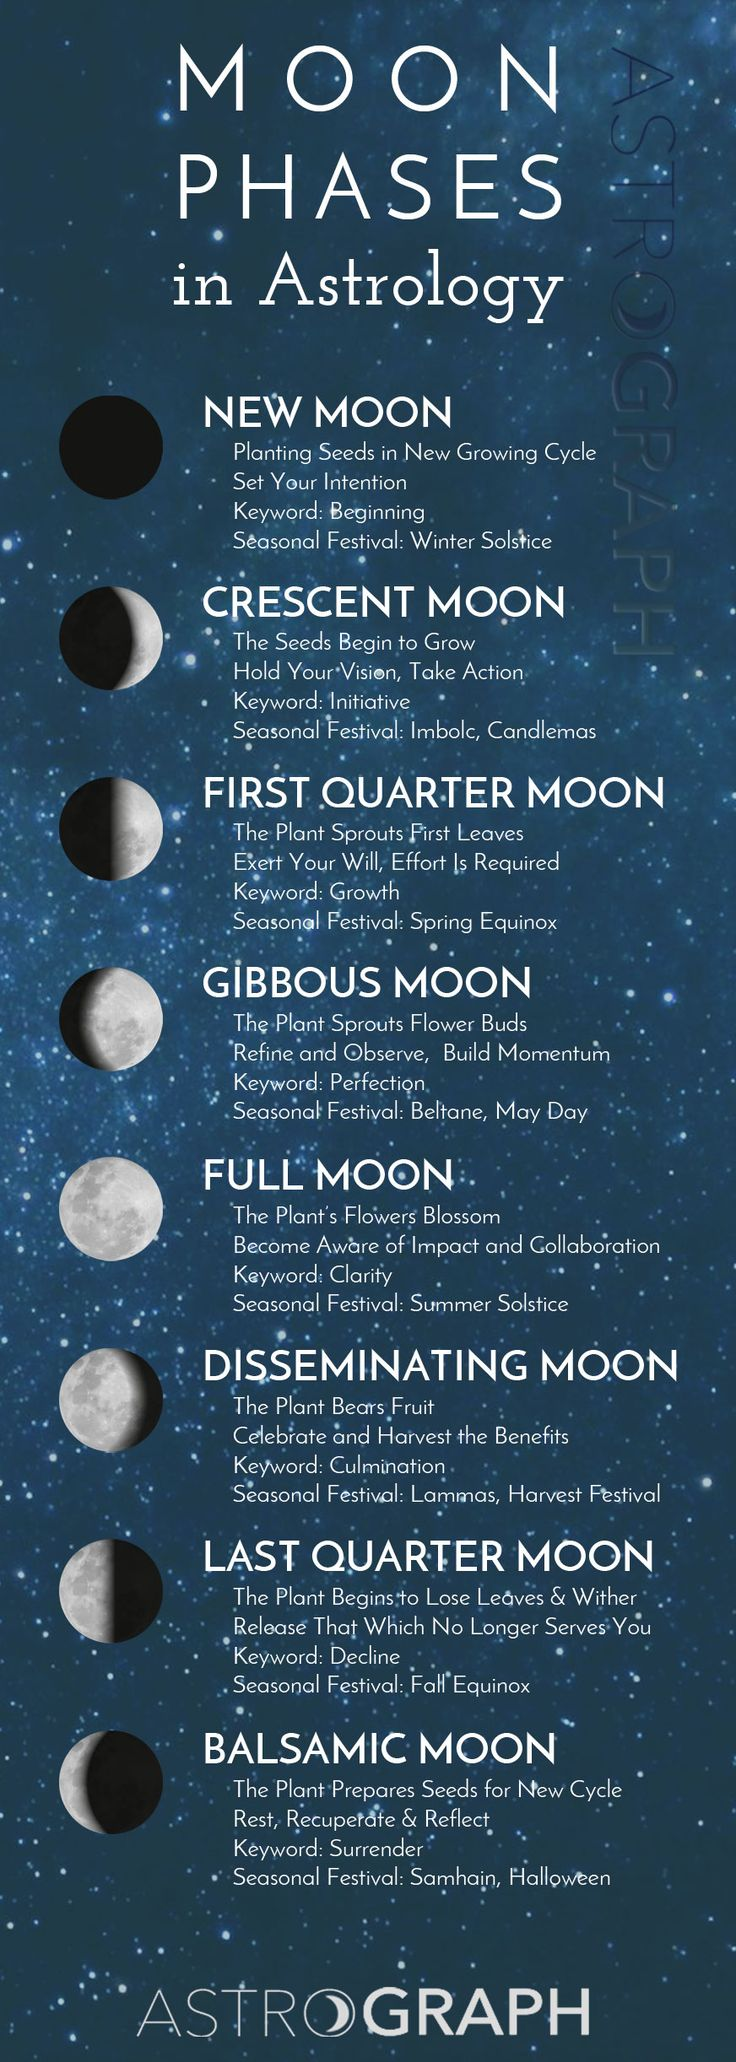 Follow along with the Moon Phases.  Utilize the gift of astrology to flow with the natural rhythms of life.